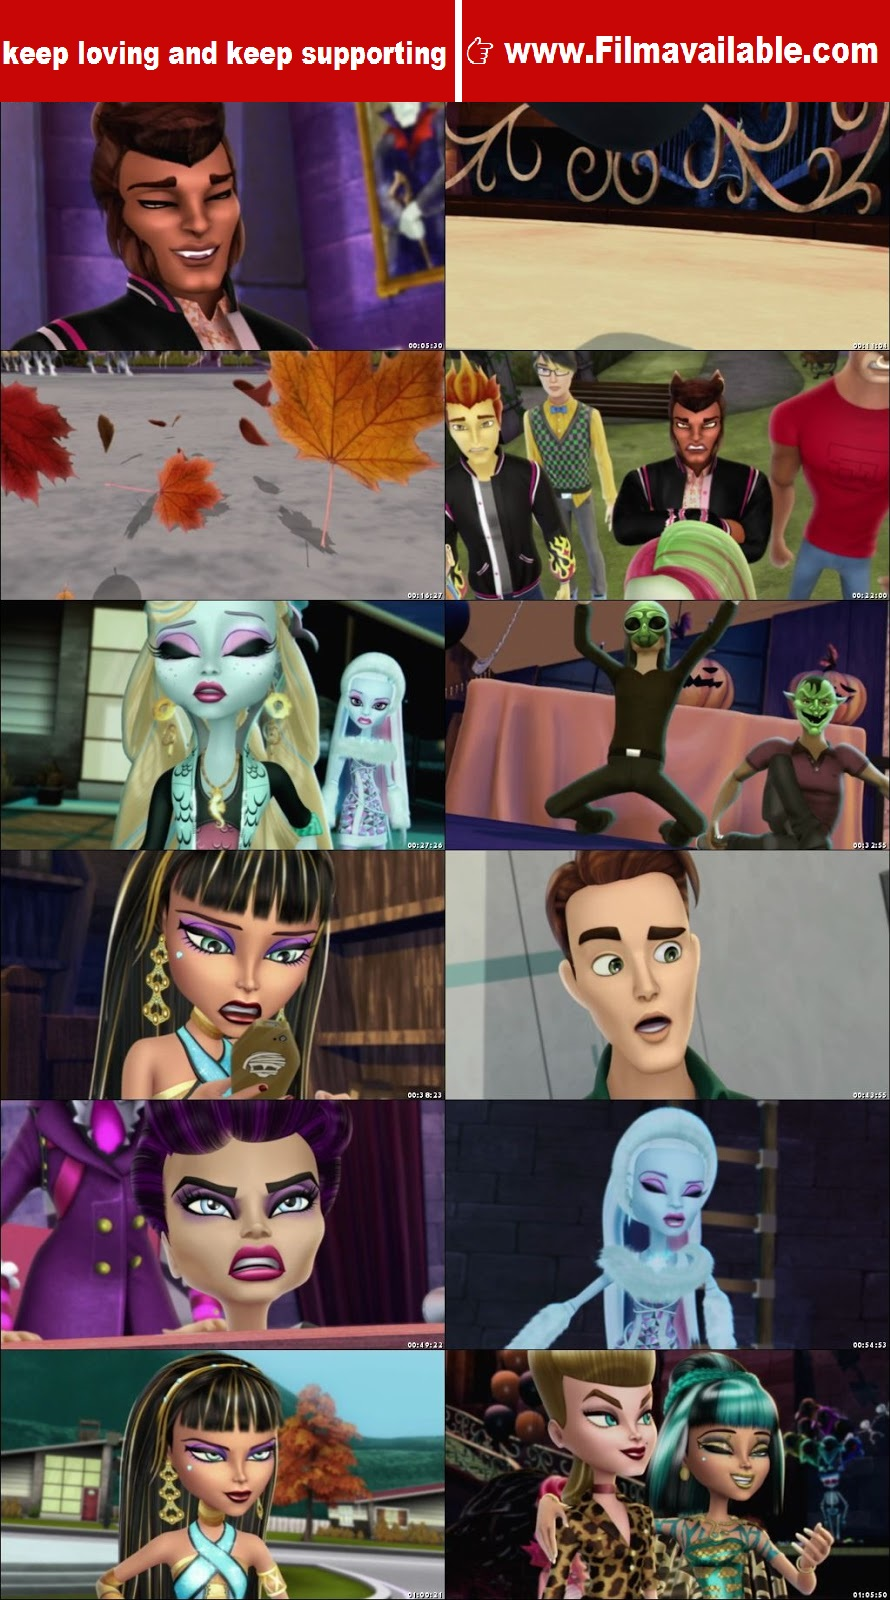 Monster High Ghouls Rule! 2012 latest movies free download, Monster High Ghouls Rule! 2012 hd movies download, Monster High Ghouls Rule! 2012 new movie download,Monster High Ghouls Rule! 2012 download free movies online, Monster High Ghouls Rule! 2012 hd movies free download